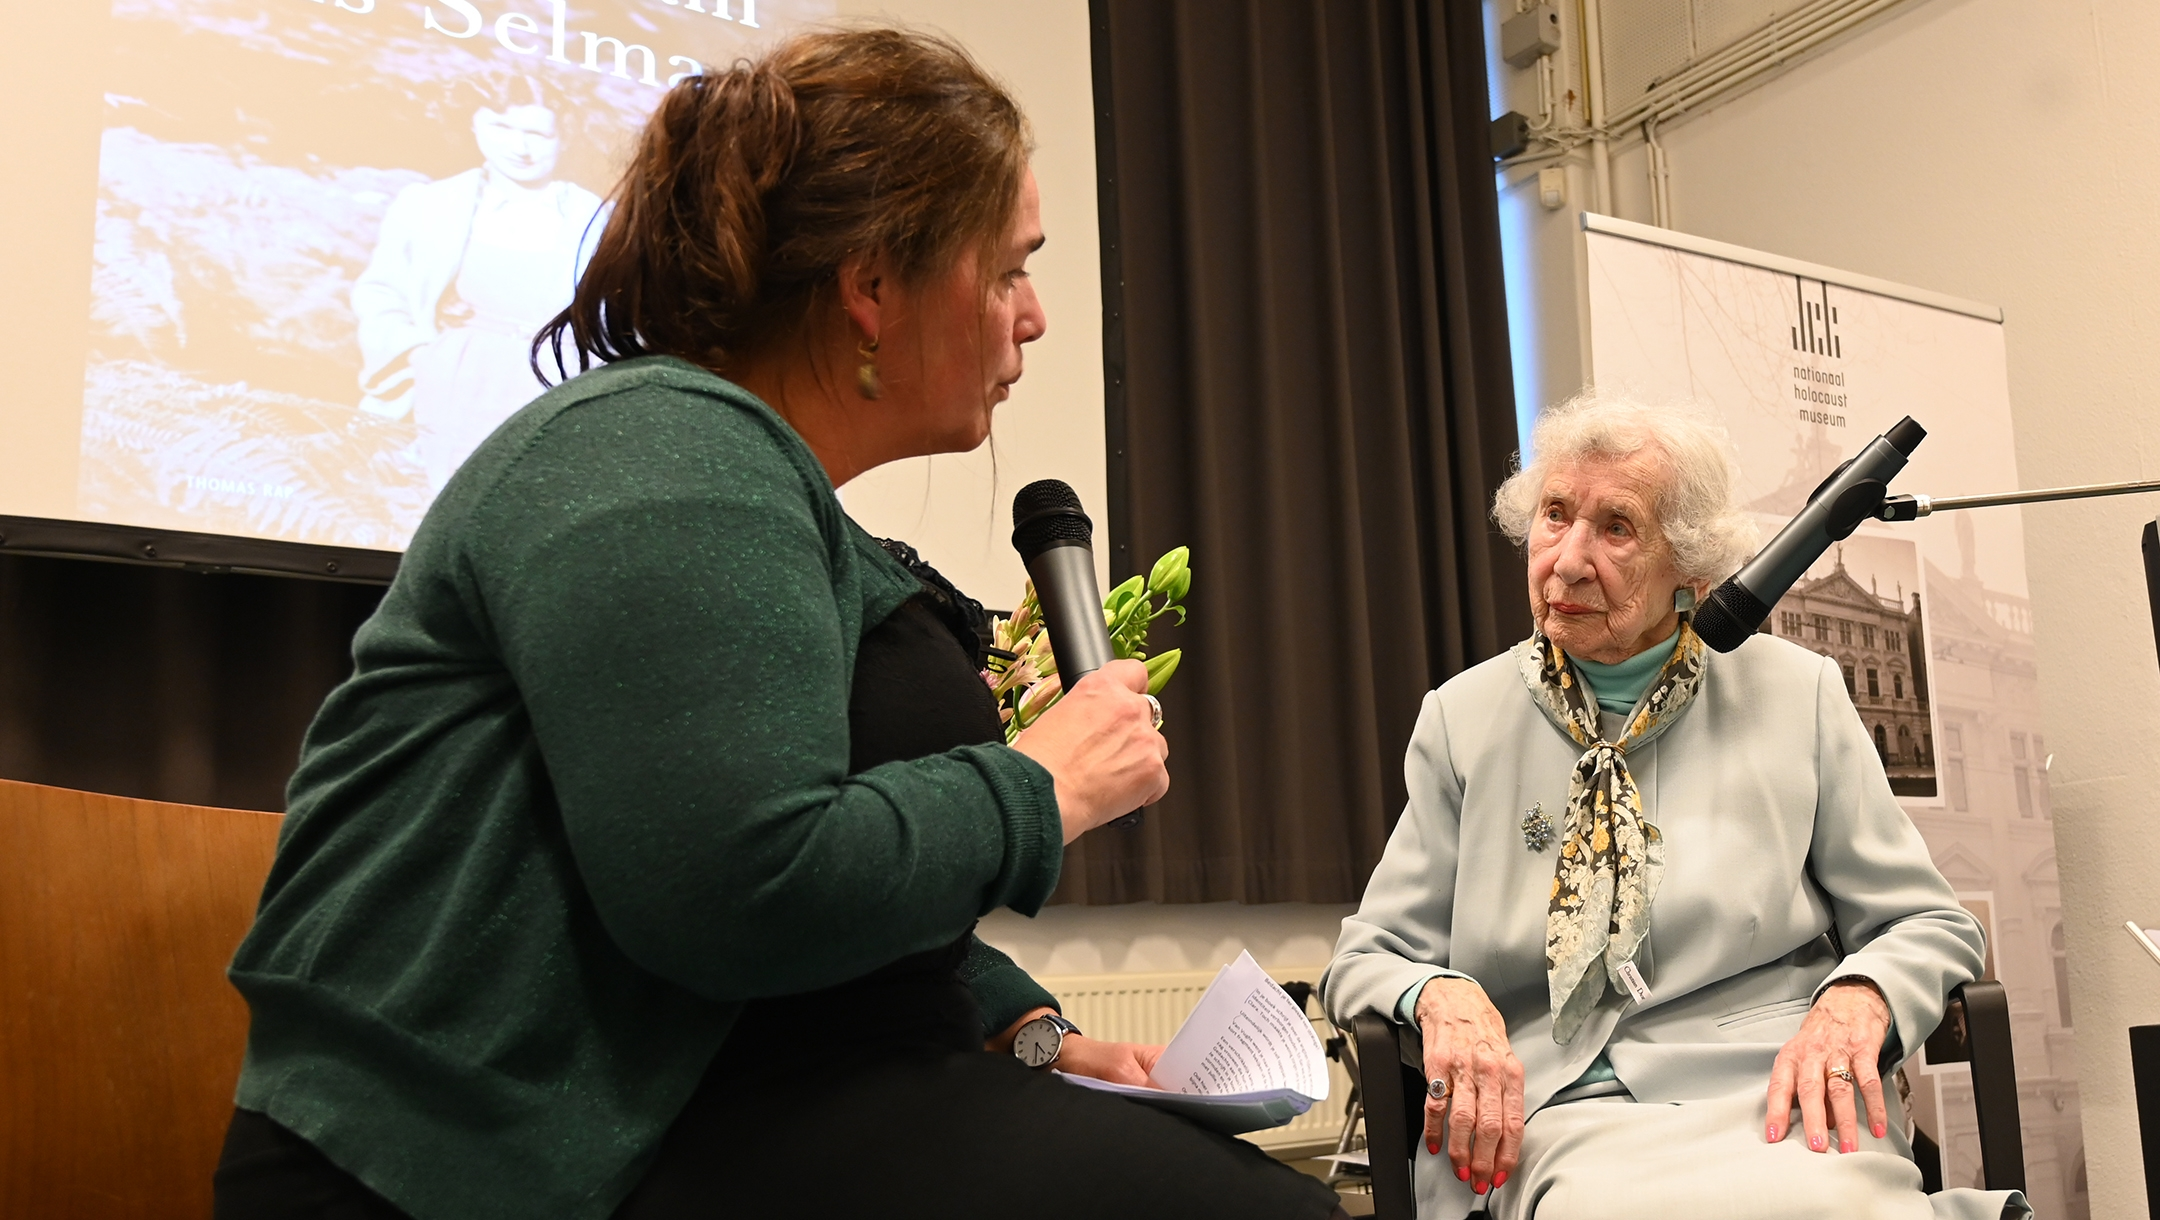 Selma van de Perre, right, being interviewed about her book at the National Holocaust Museum in Amsterdam, the Netherlands on Jan. 9, 2020. (Cnaan Liphshiz)